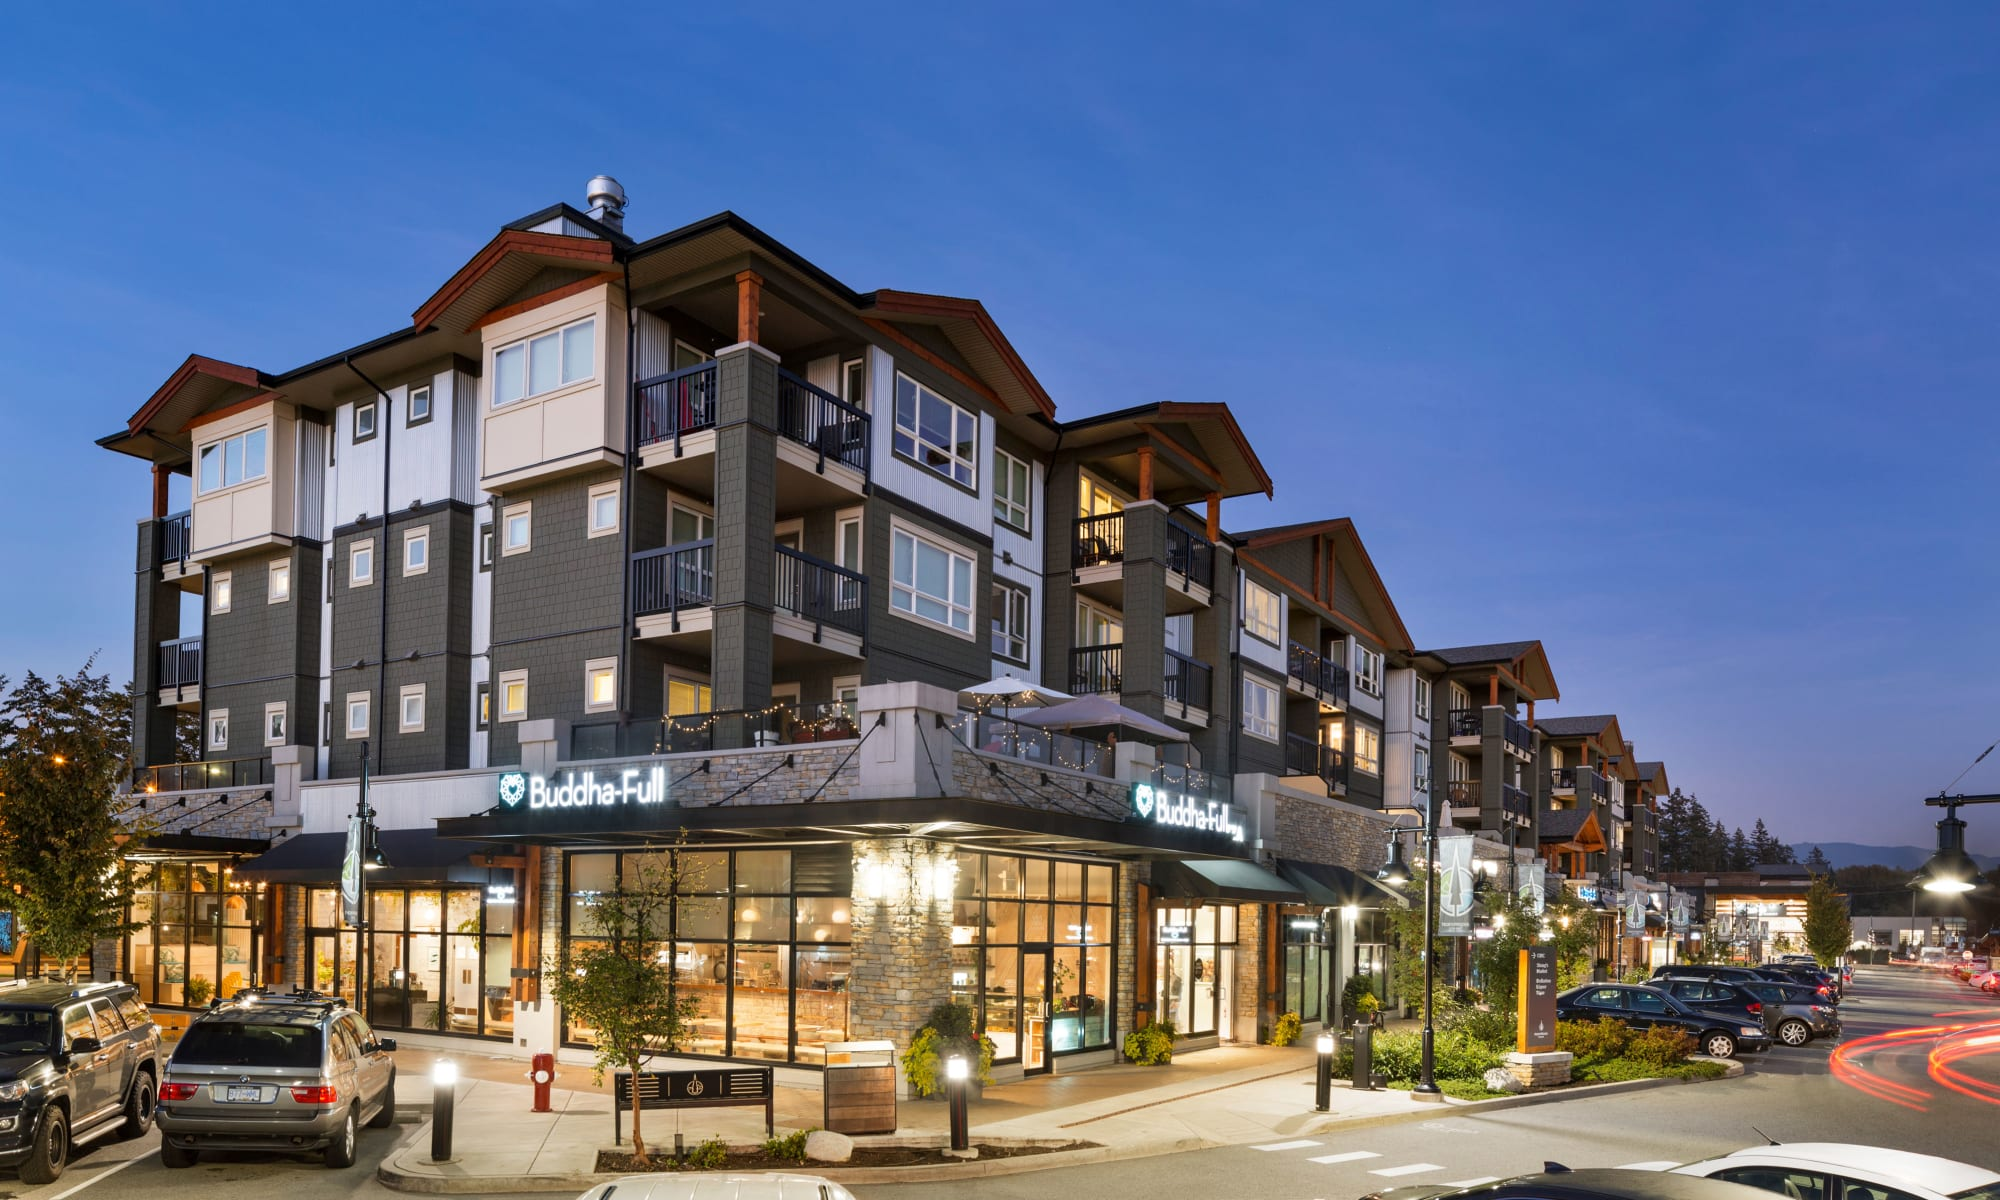 Night time exterior shot of Northwoods Village in North Vancouver, British Columbia